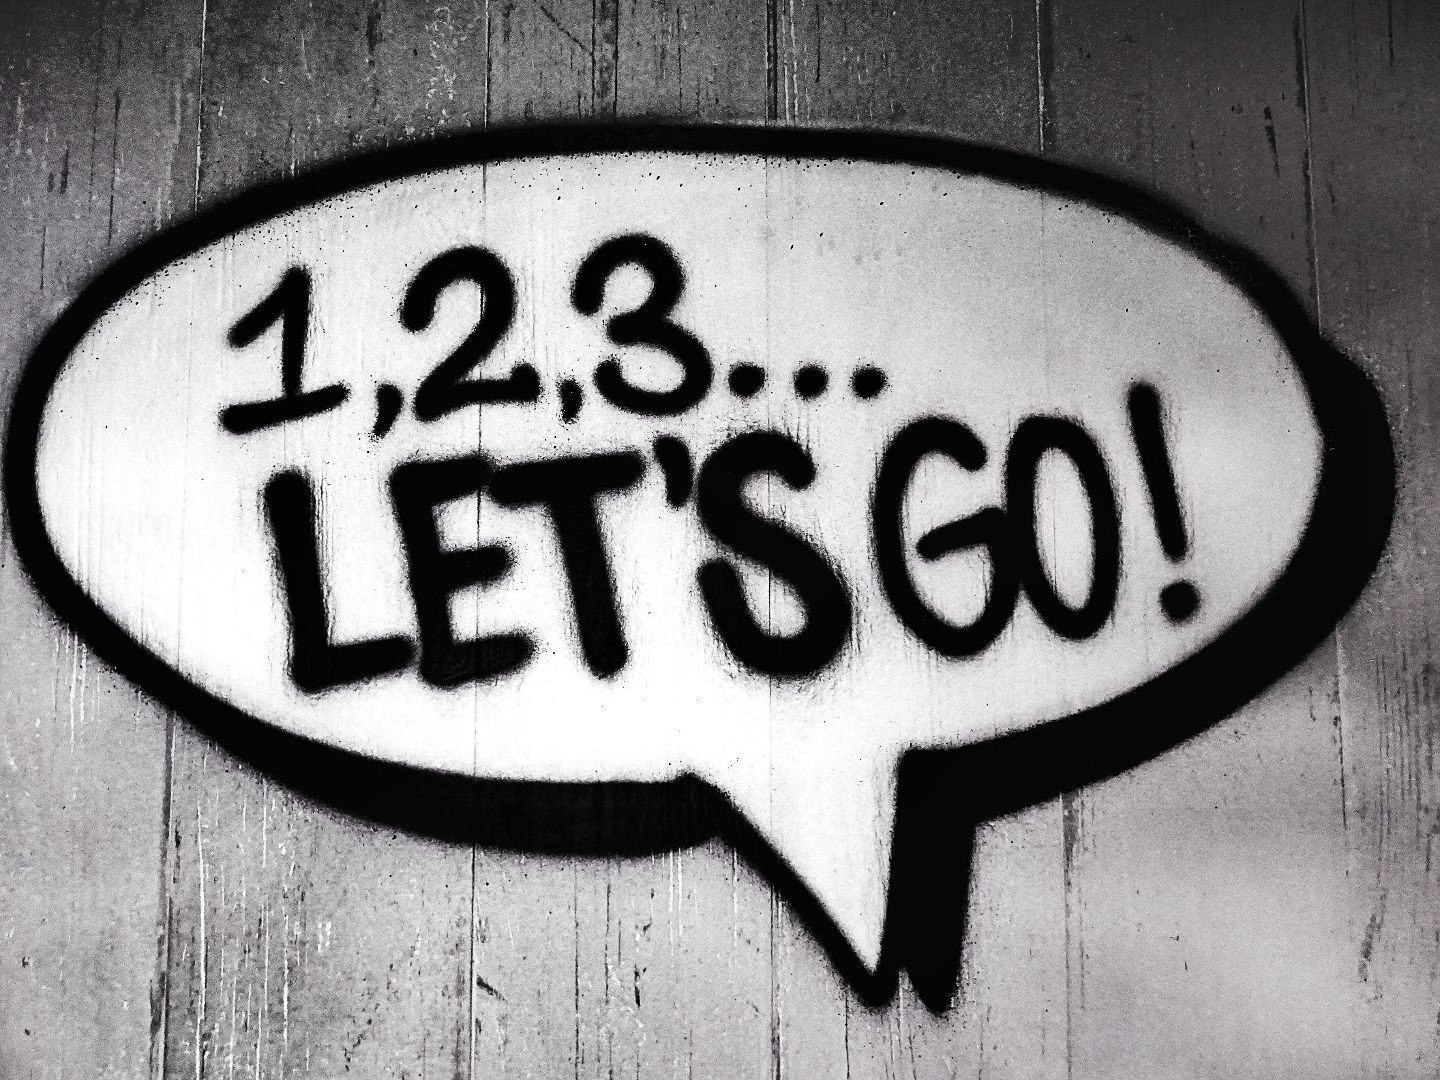 speech bubble with '123 let's go' inside